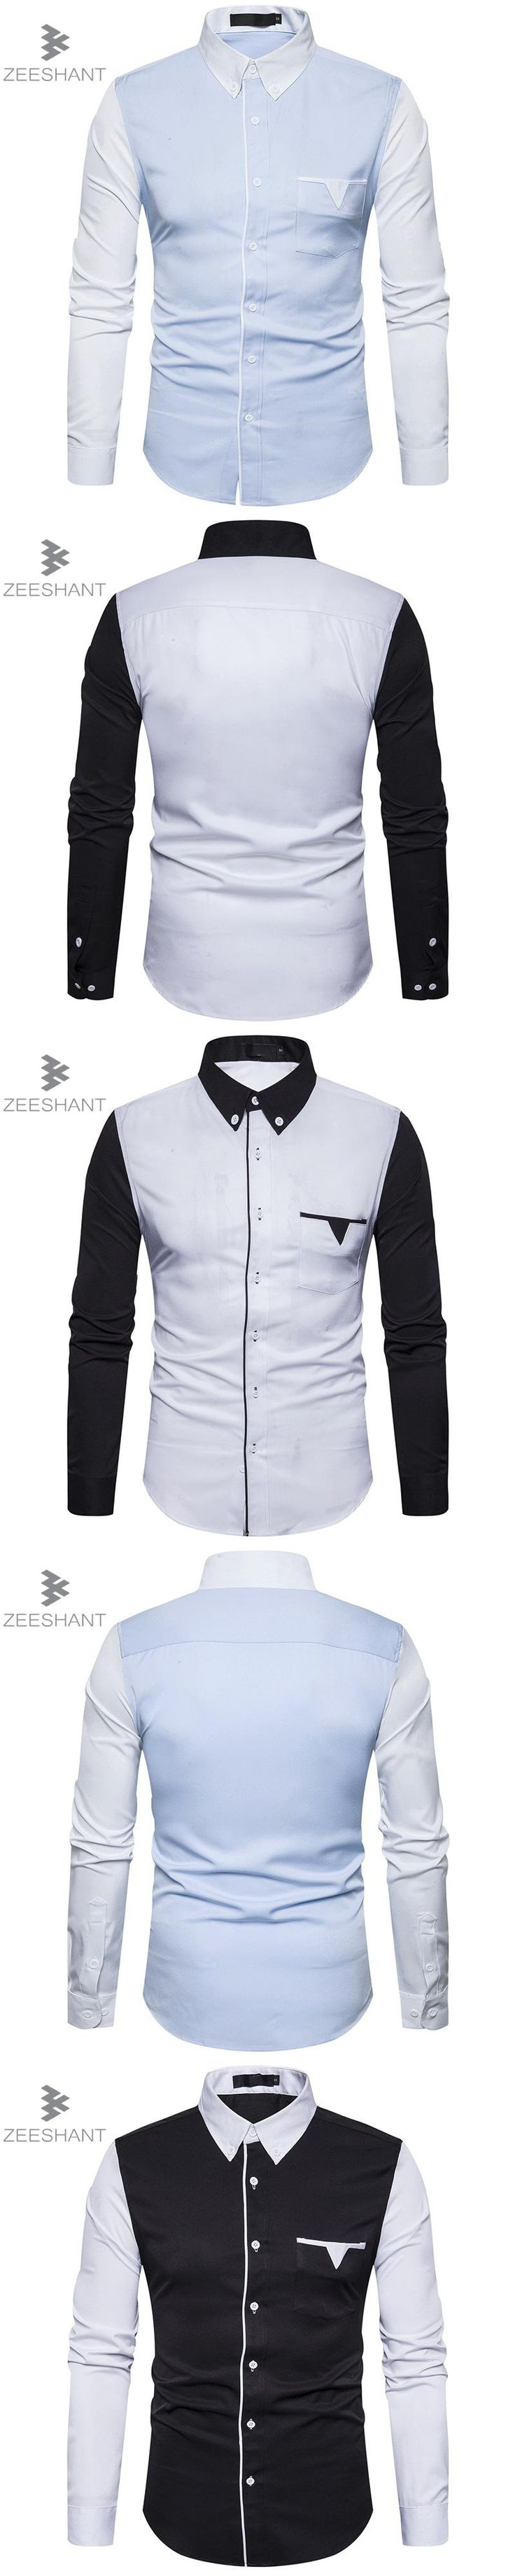 Zeeshant New Fashion Autumn Shirts For Men Slim Fit Tuxedo Casual Long Sleeve Shirt Men Clothes Mens Shirts EU Size XXL Shirt